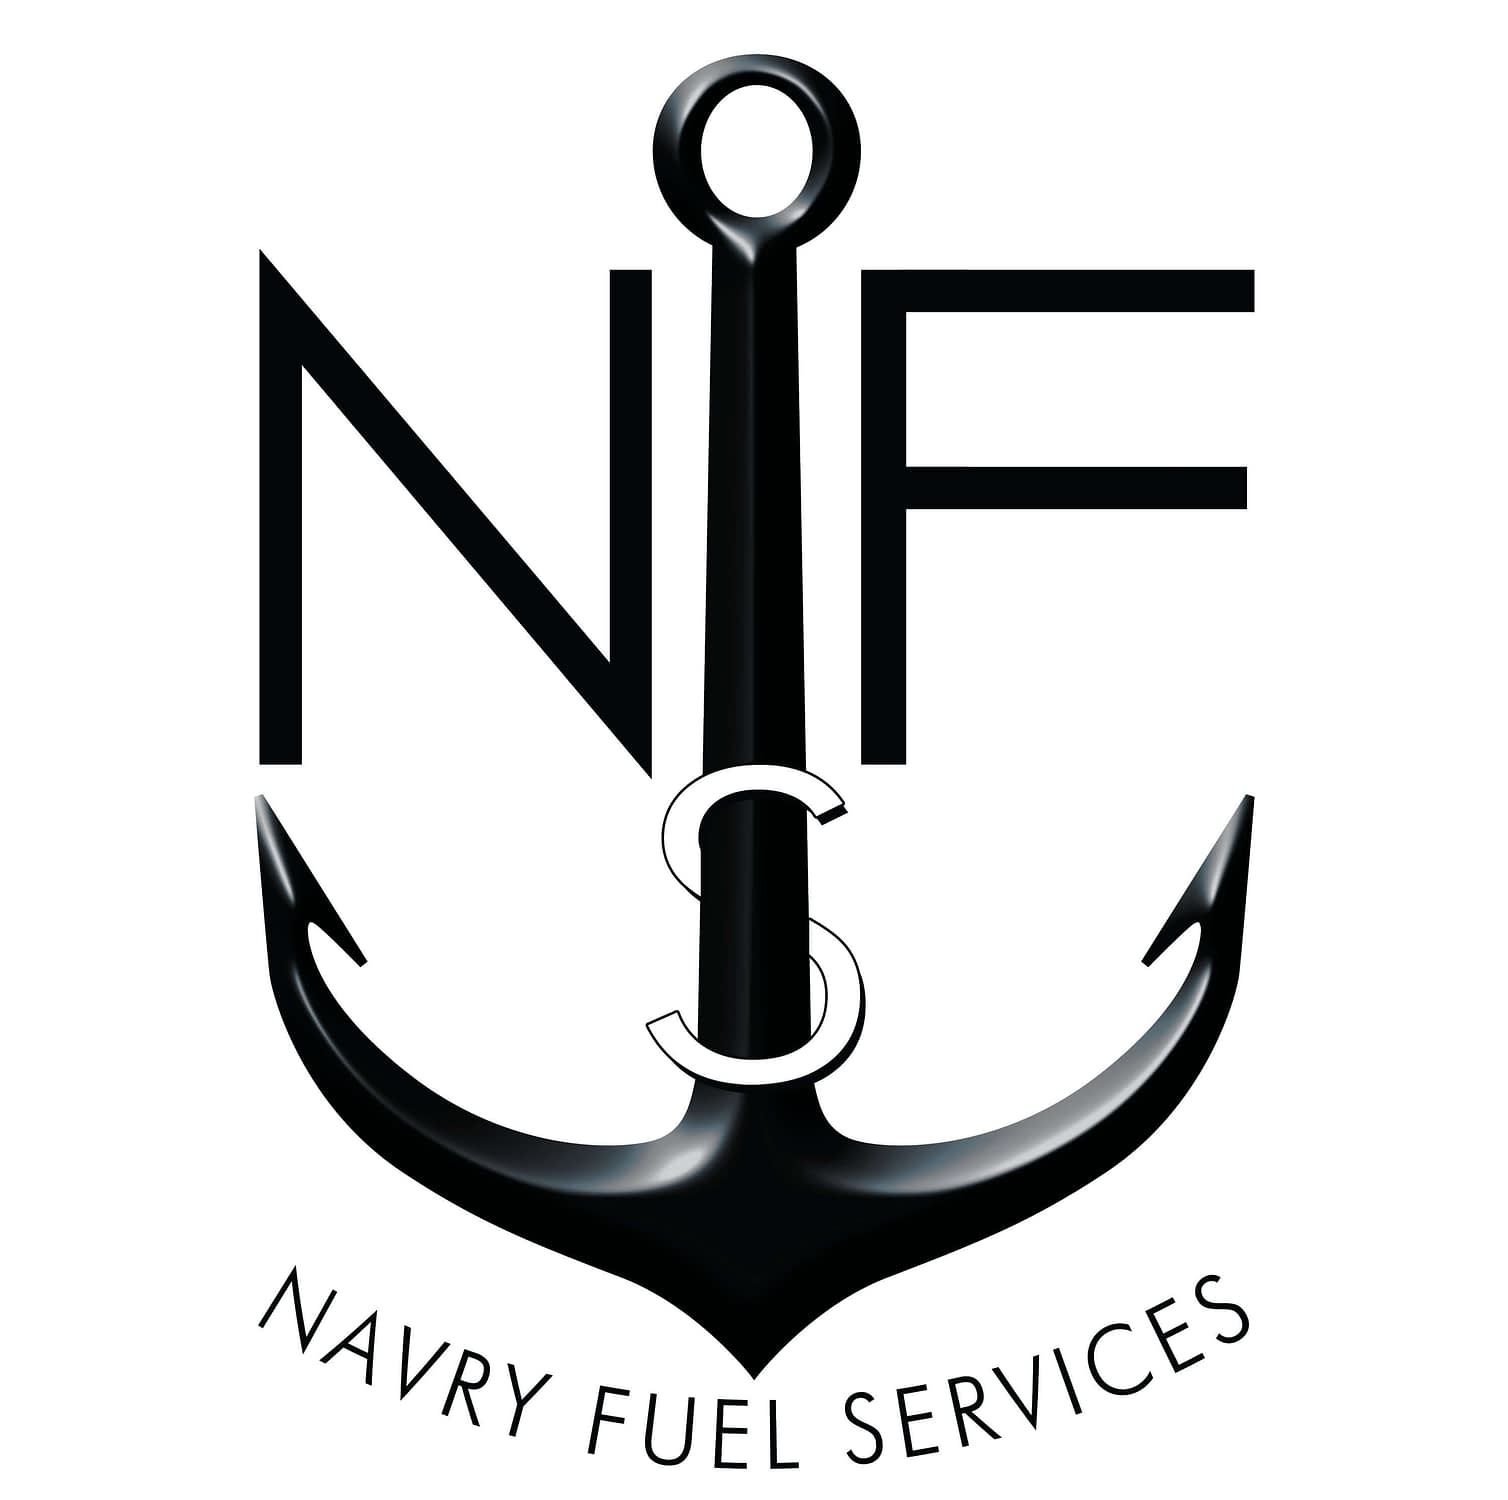 Navry Fuel Services